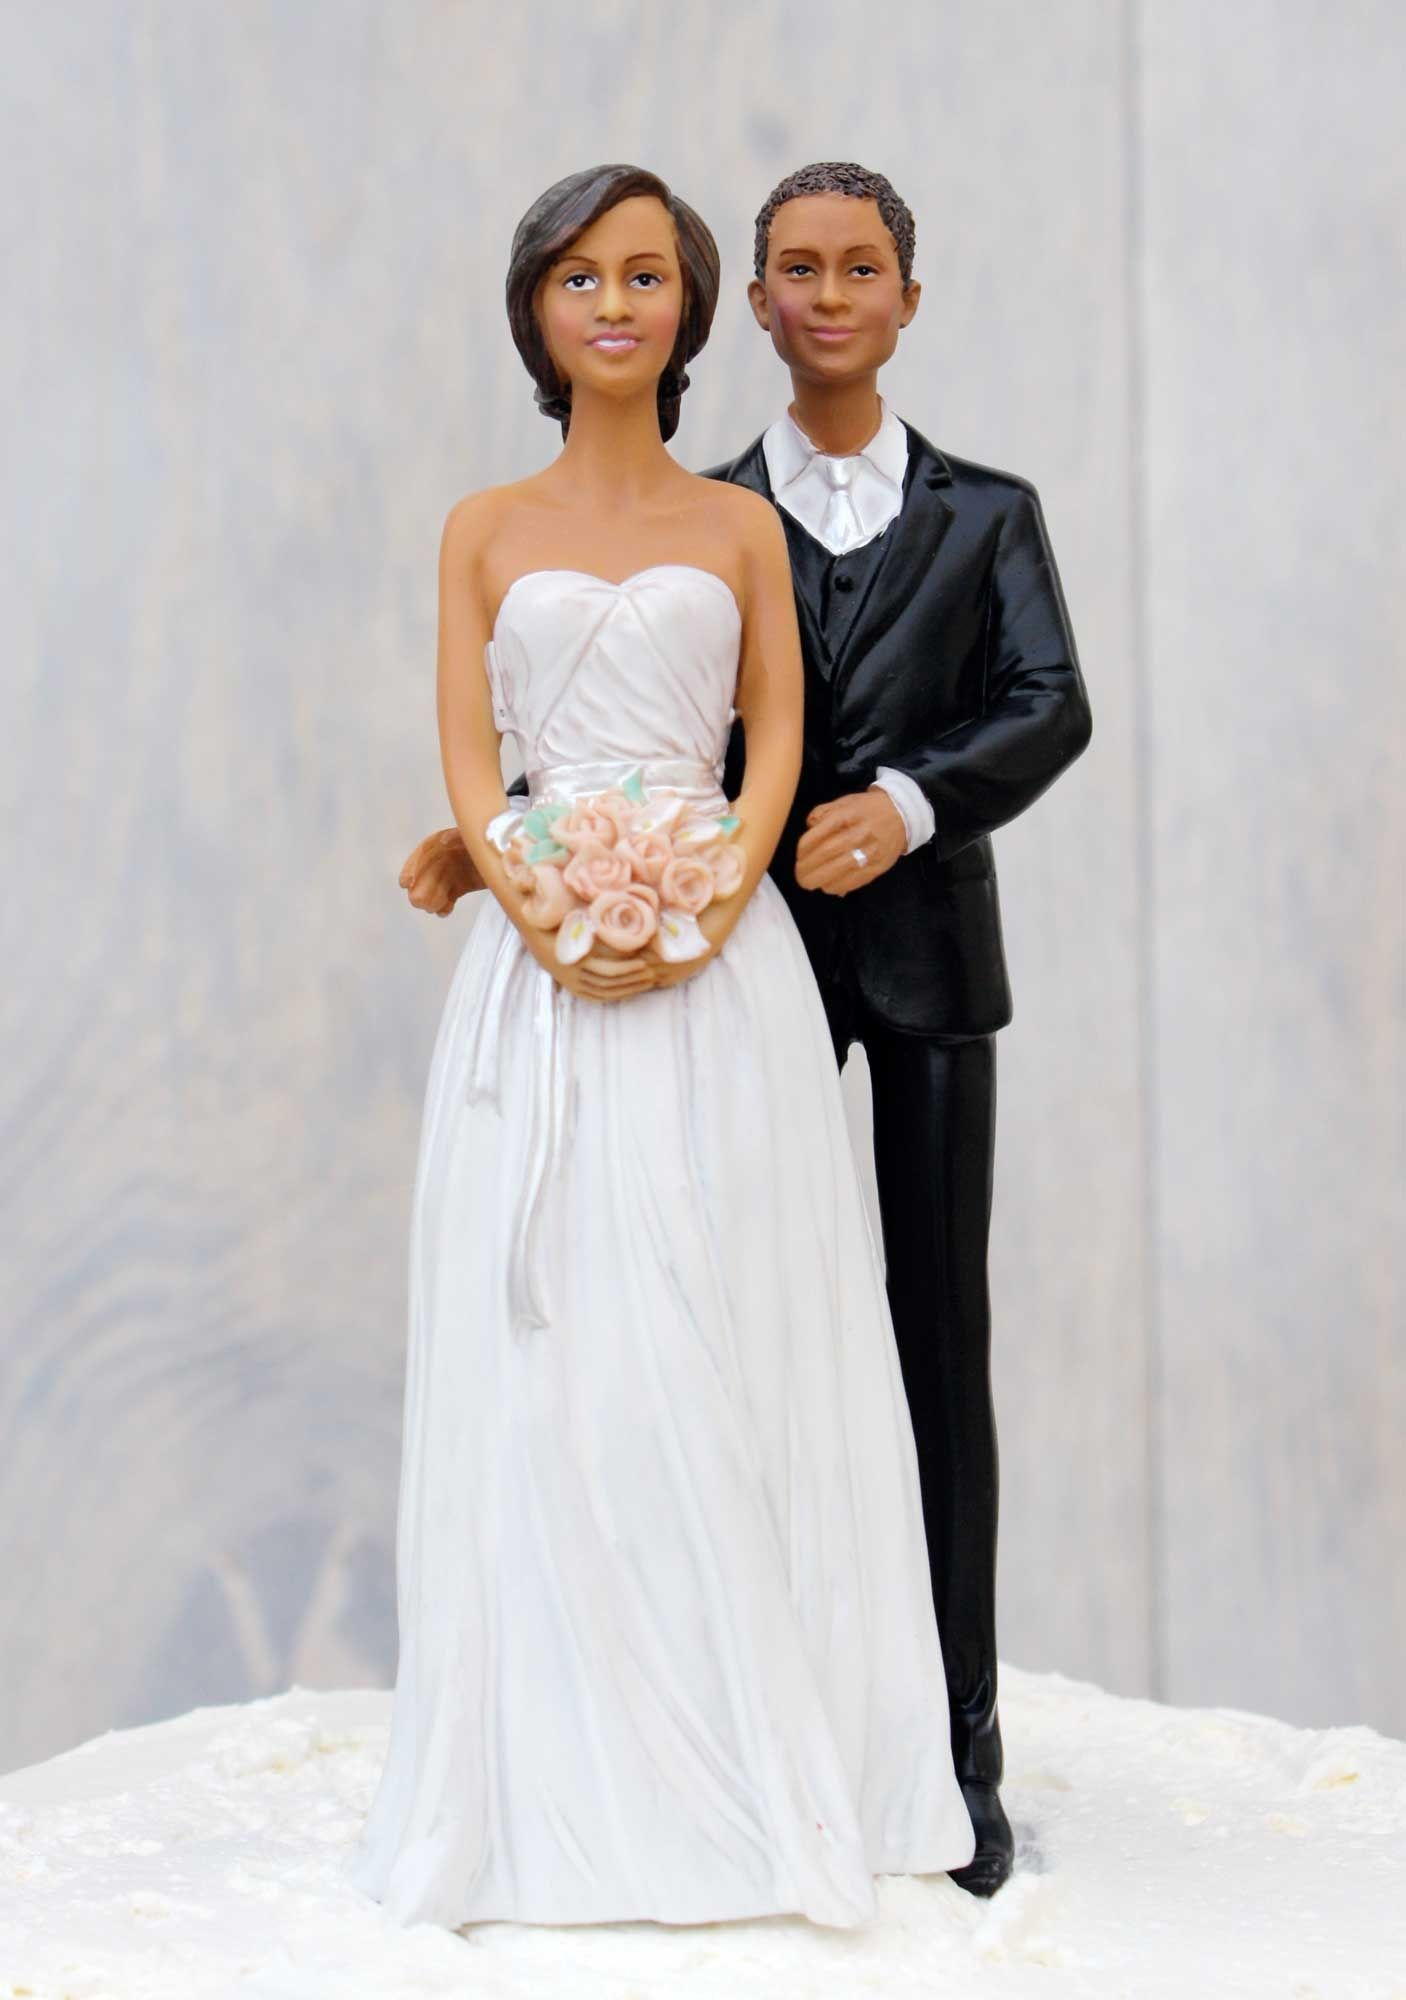 This Sophisticated African American Wedding Couple Cake Topper Shows The Groom In An Elegant Yet